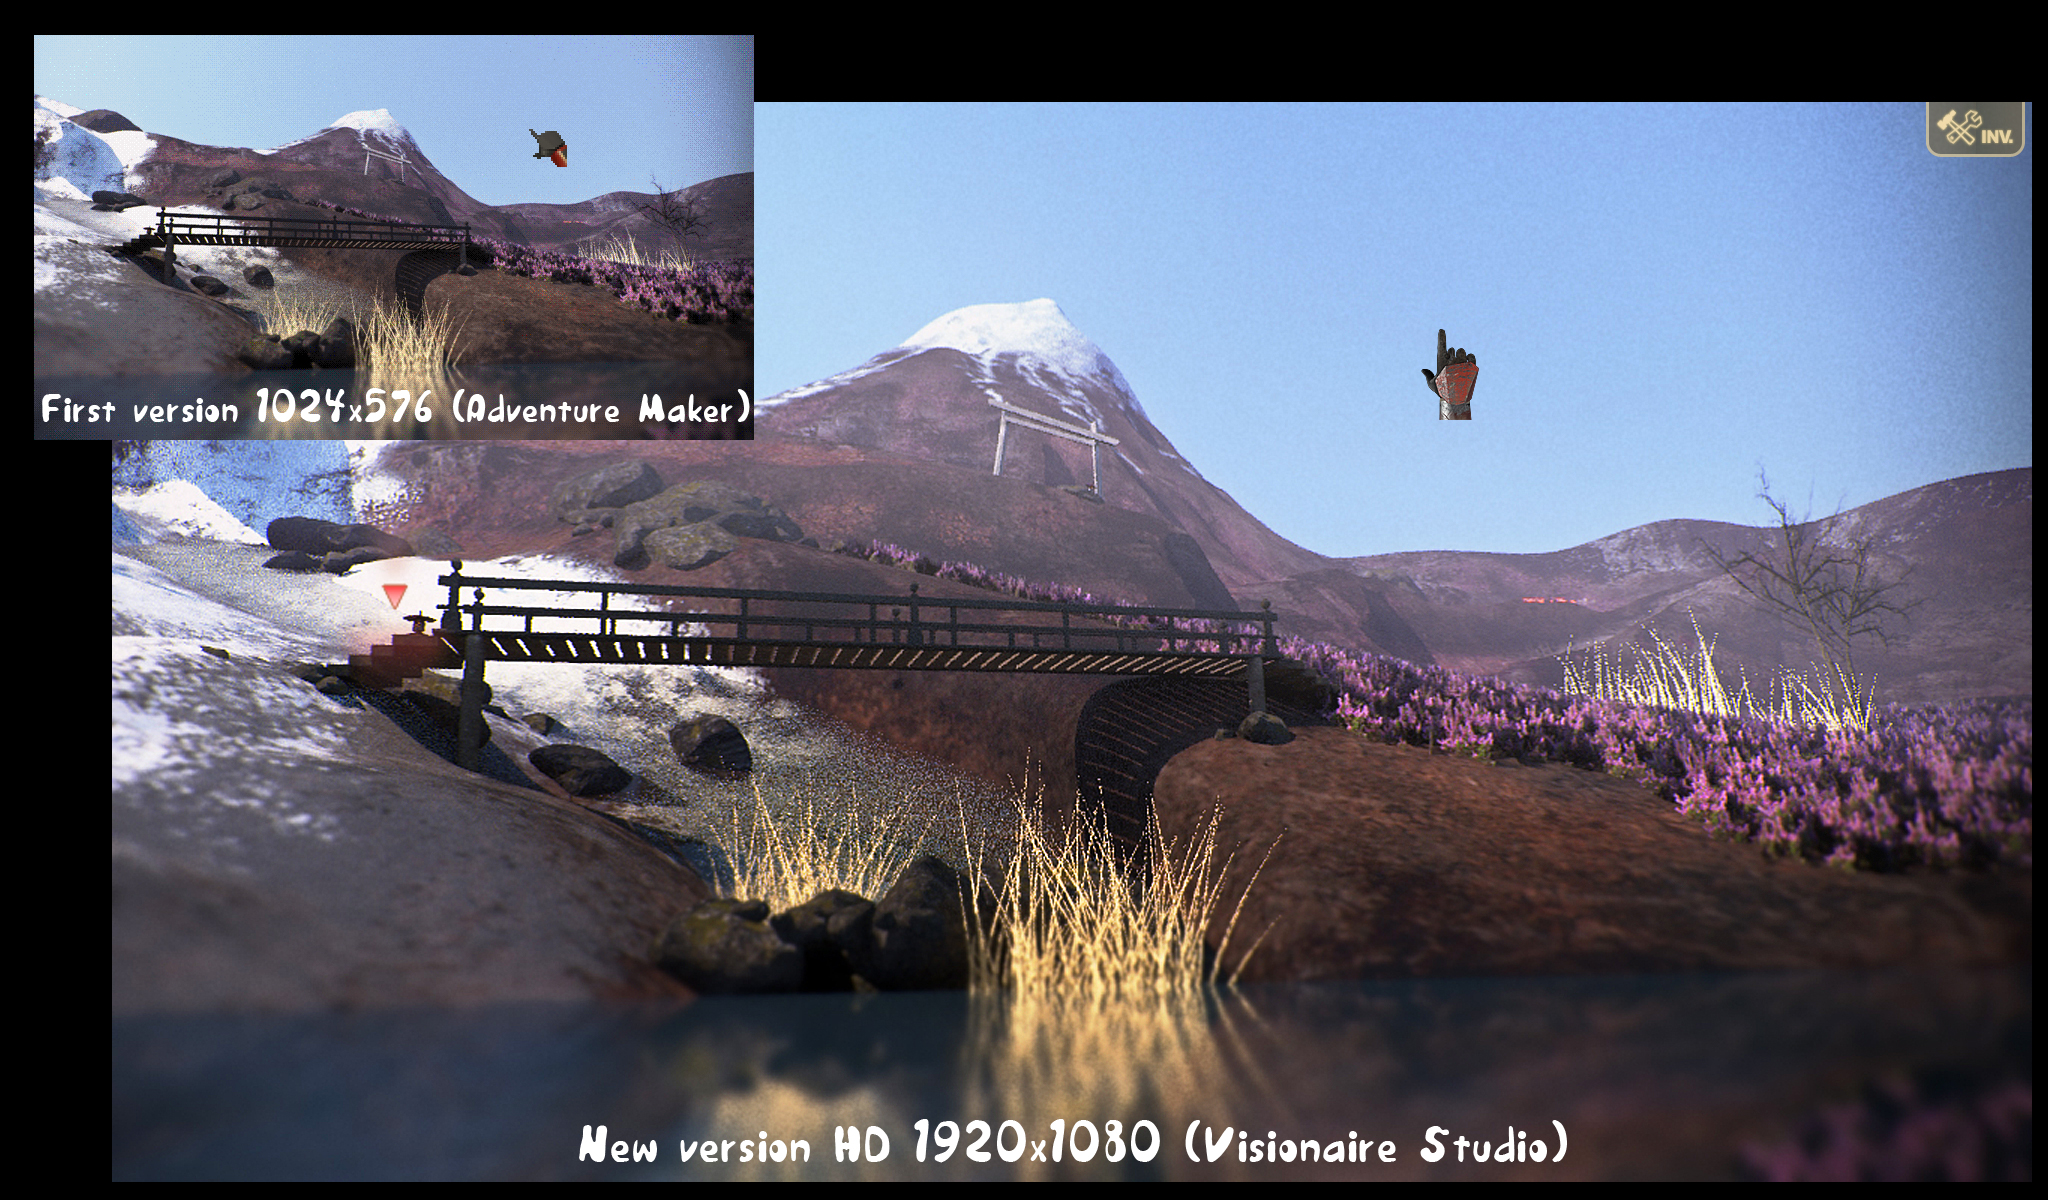 Evolution of the project with the use of Visionaire Studio